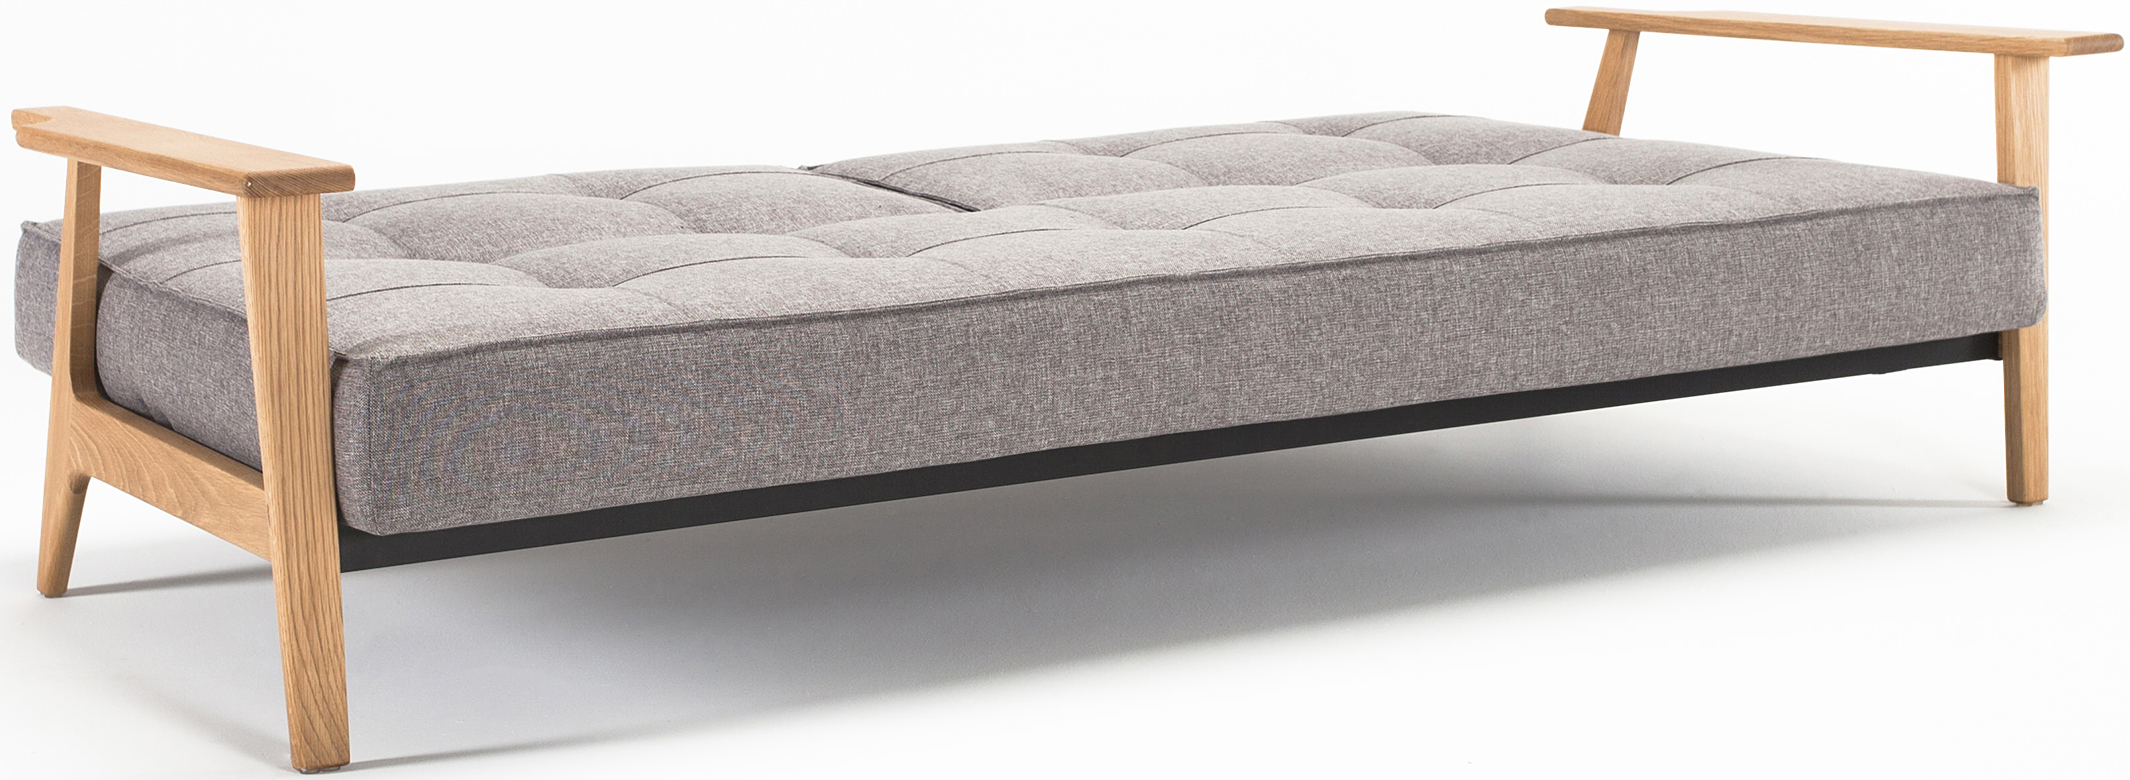 splitback sofa mixed dance grey